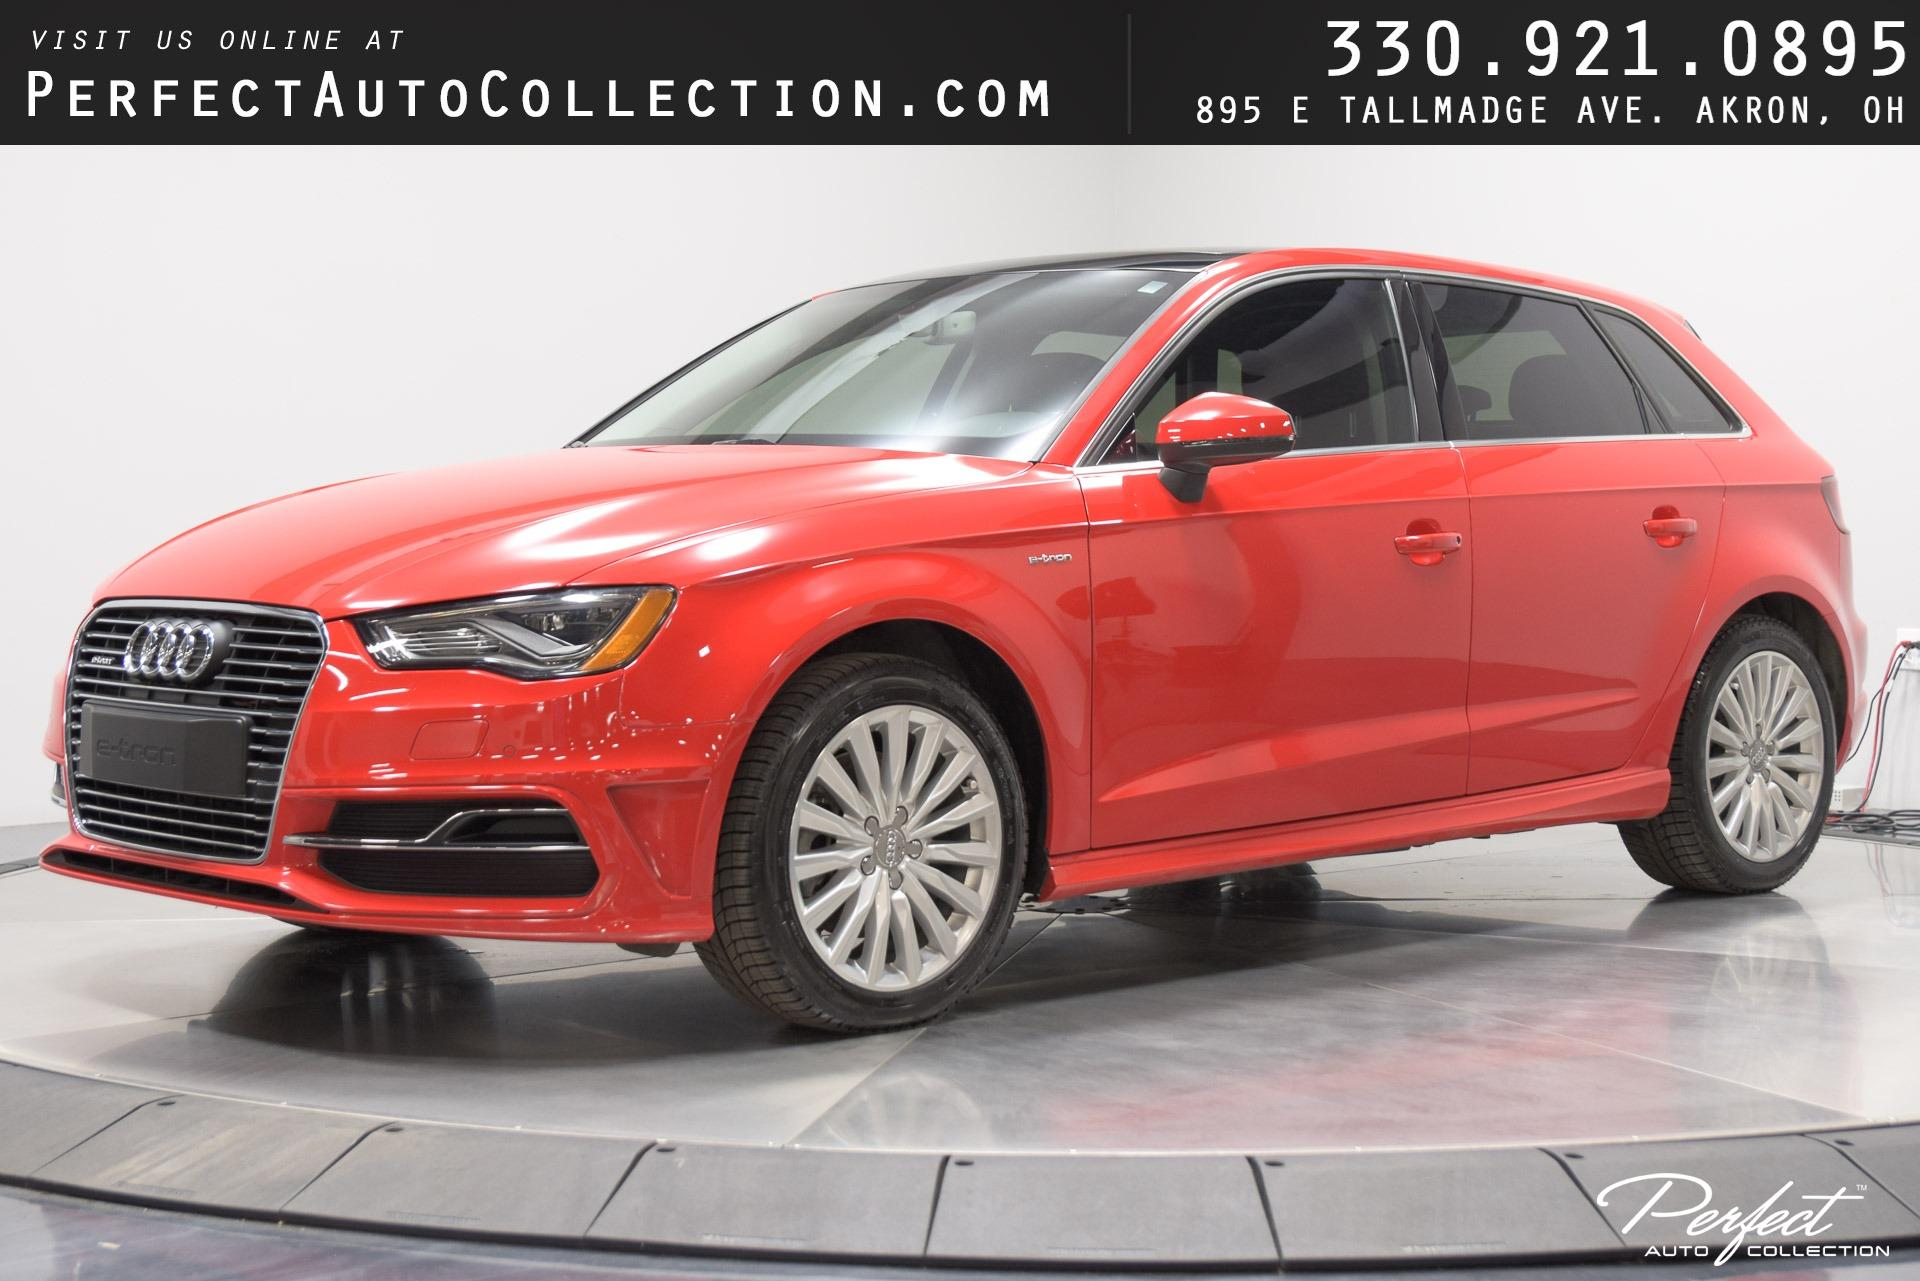 Used 2016 Audi A3 Sportback e-tron 1.4T Premium Plus for sale $18,995 at Perfect Auto Collection in Akron OH 44310 1